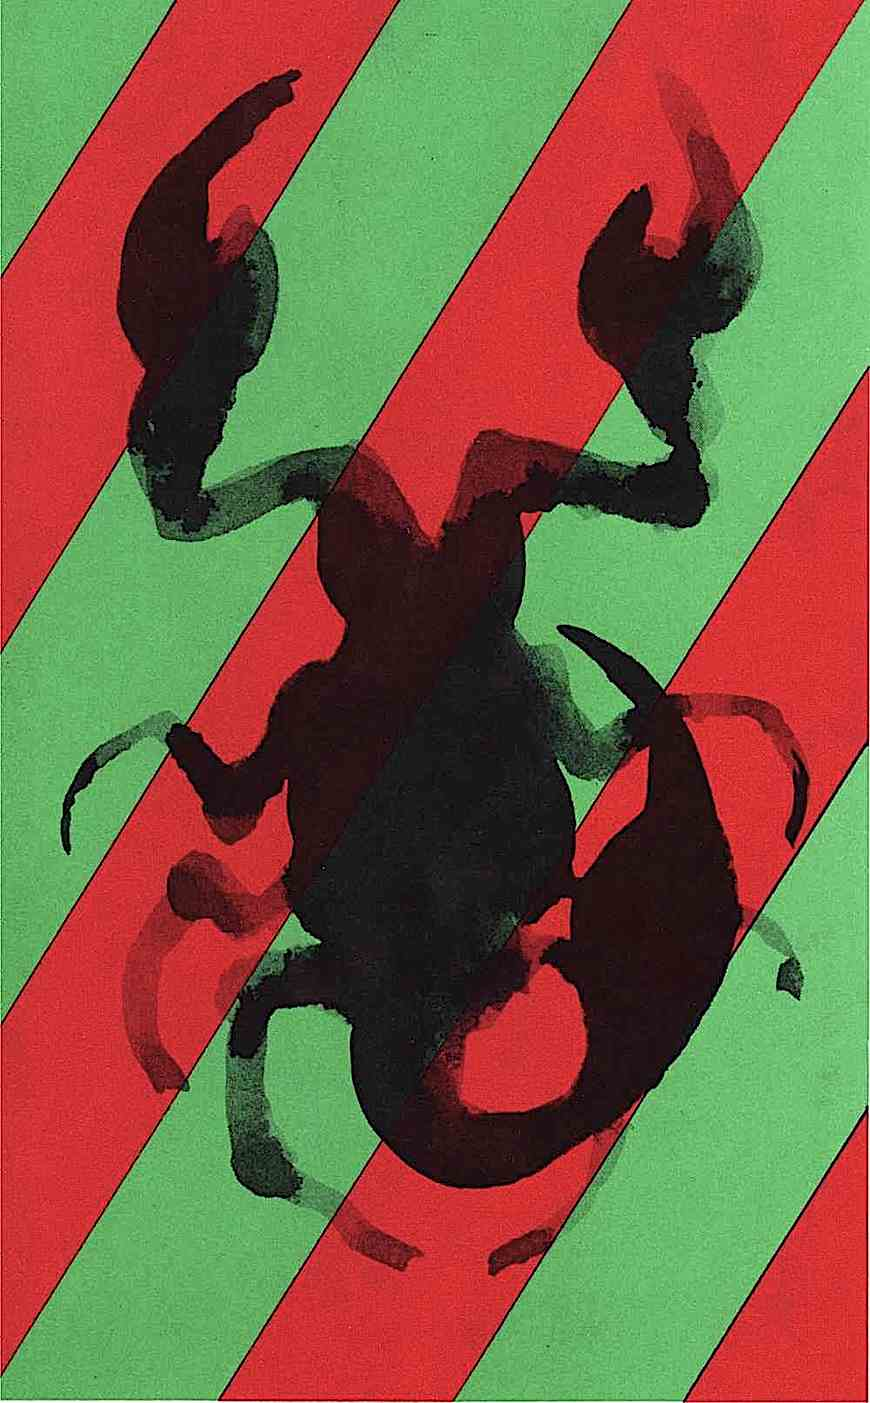 A Milton Glaser color illustration of a scorpion